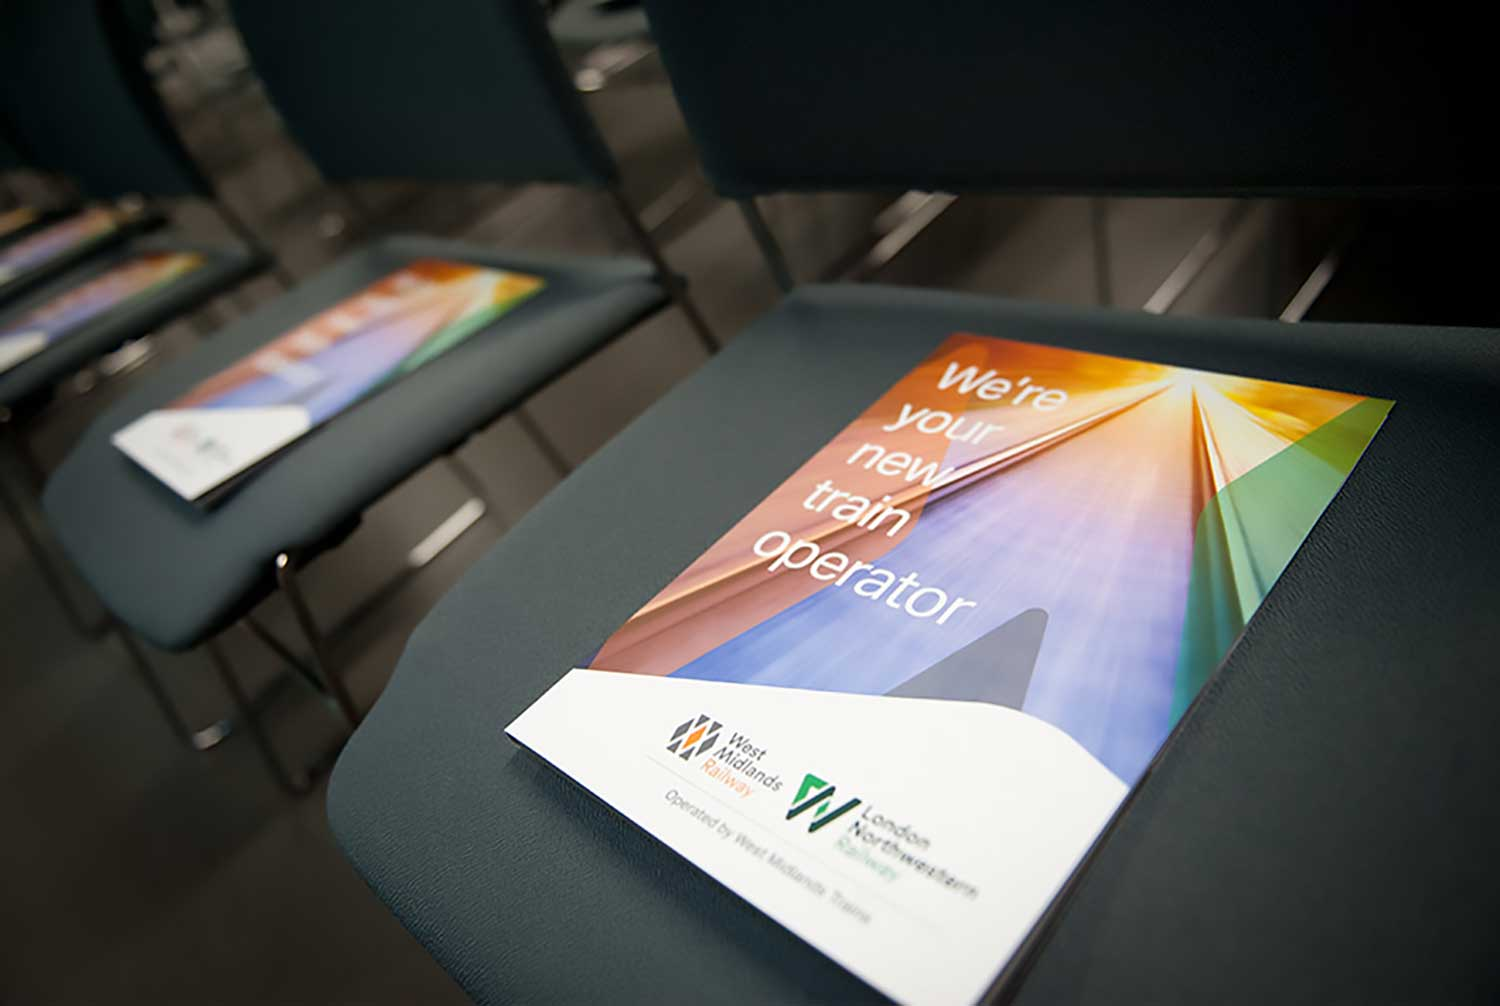 Image of brochures sitting on conference chairs